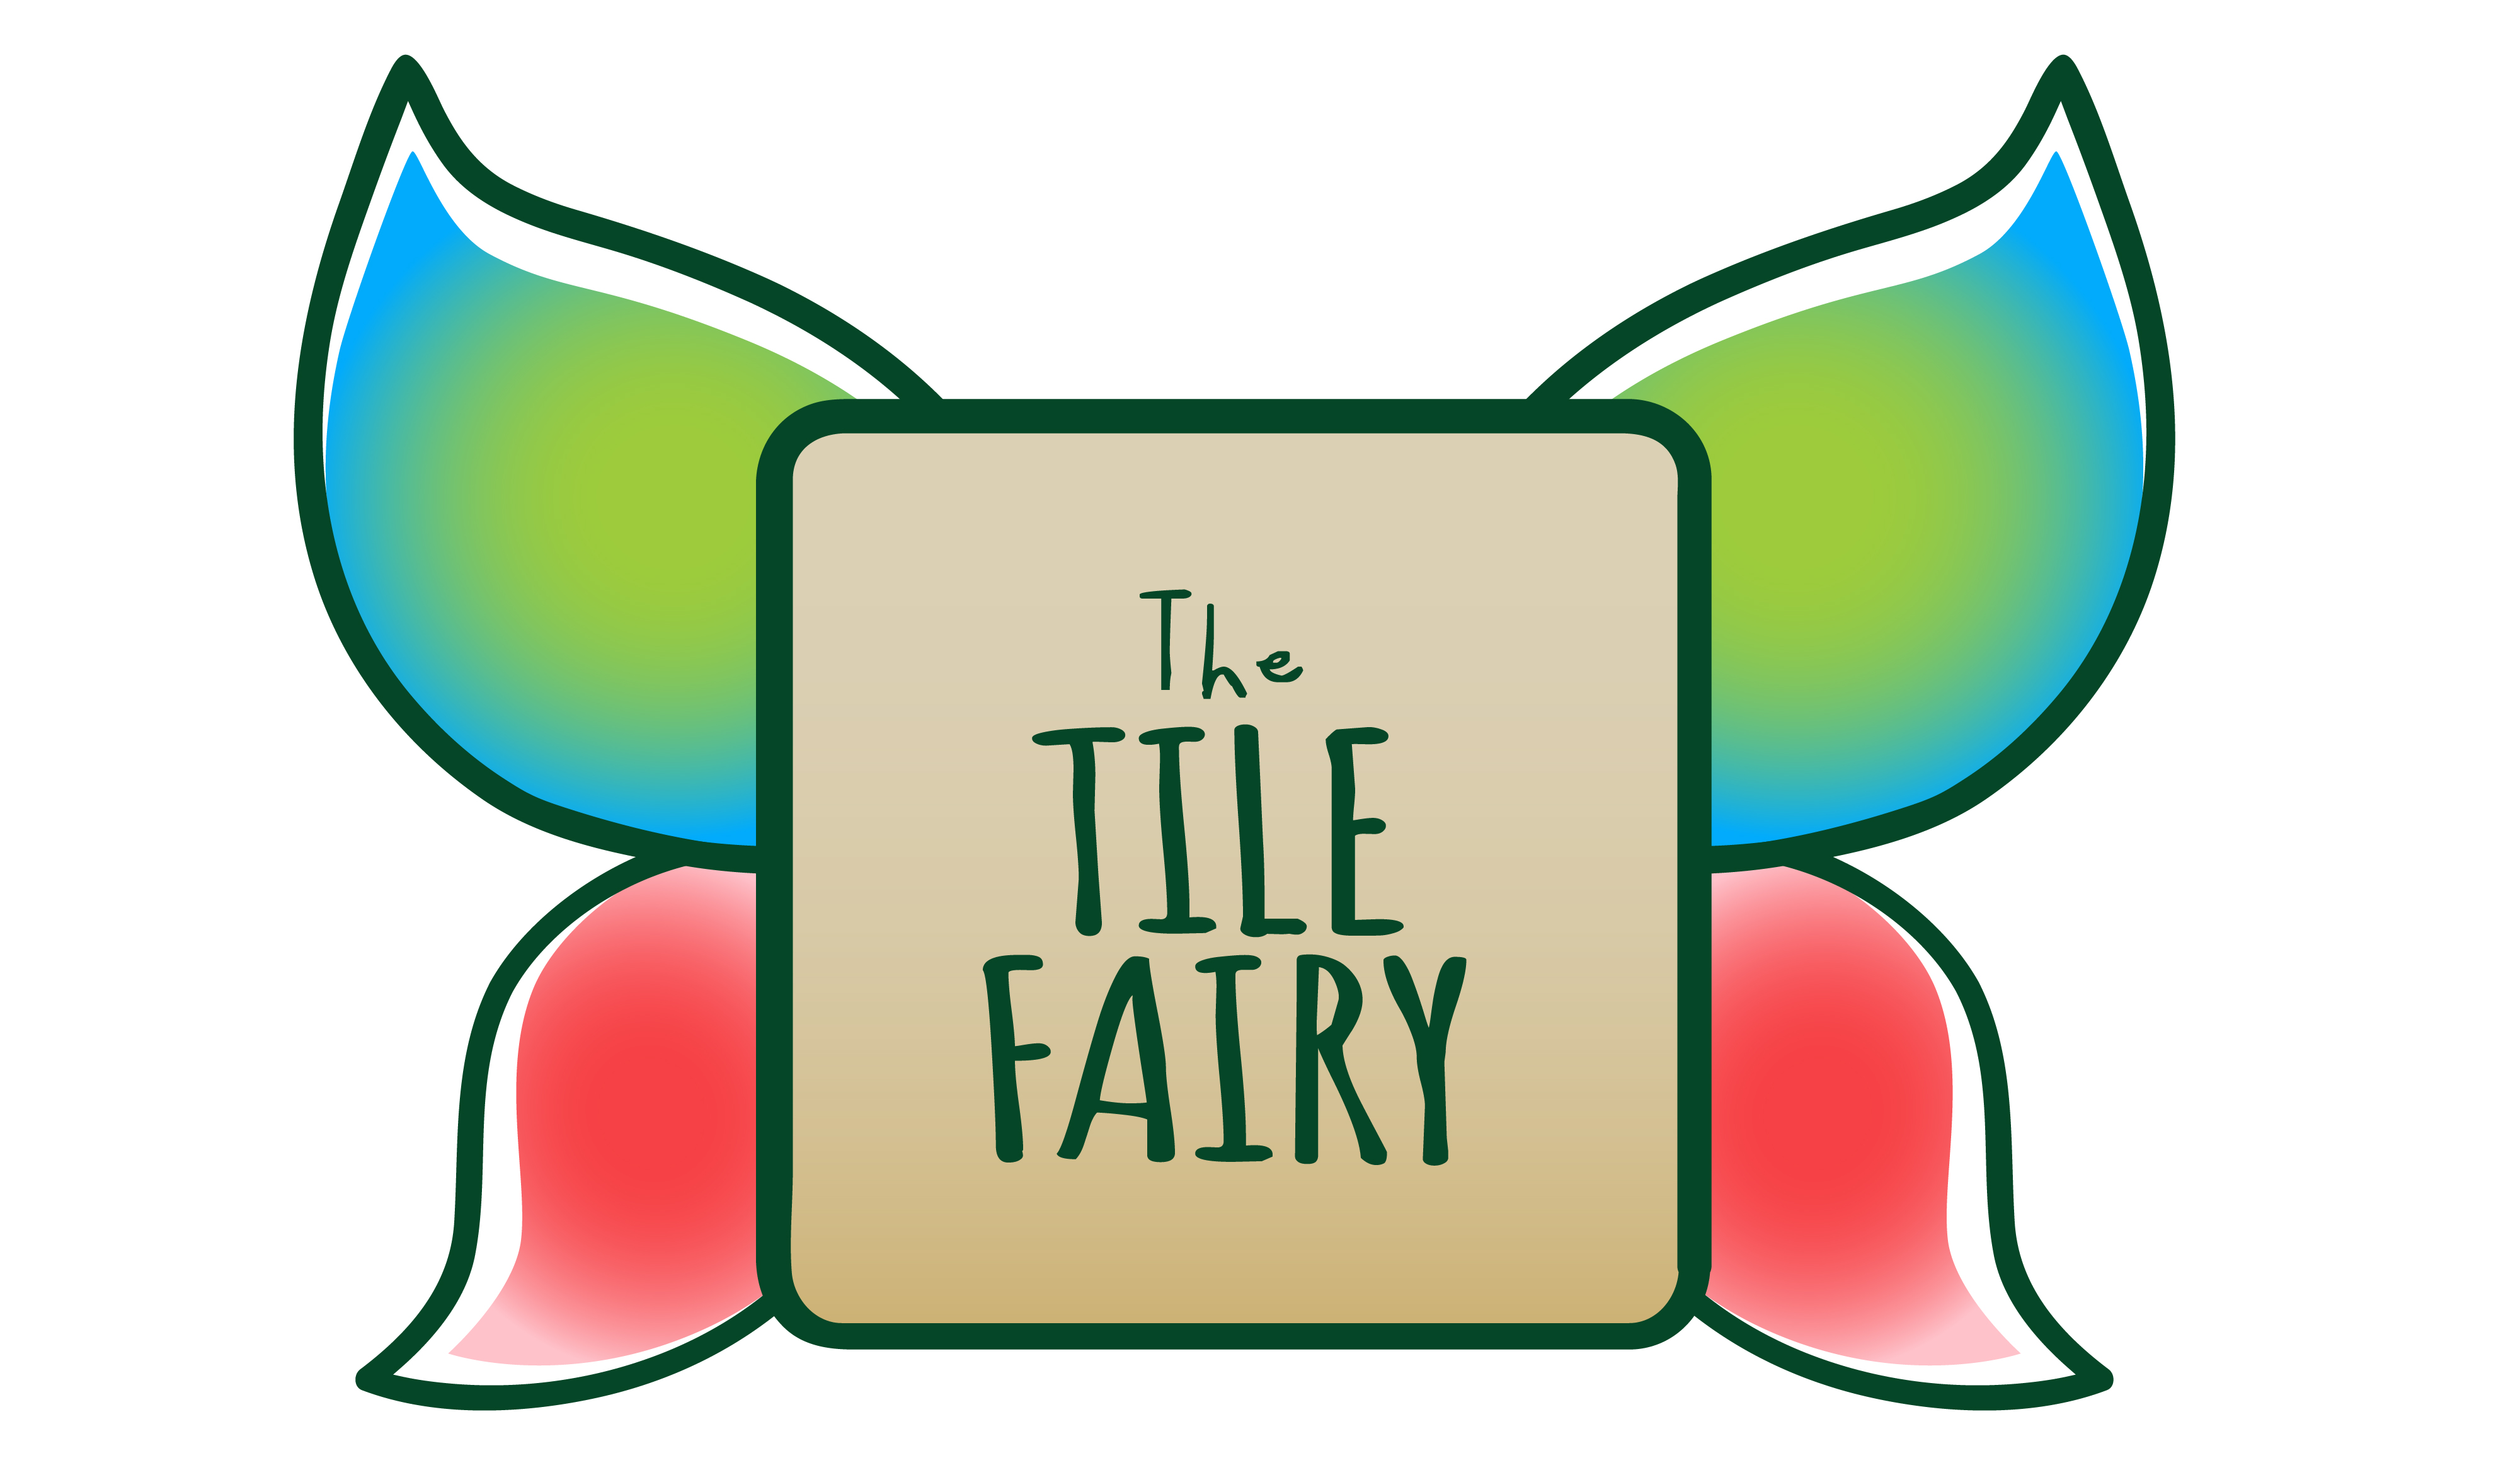 The Tile Fairy